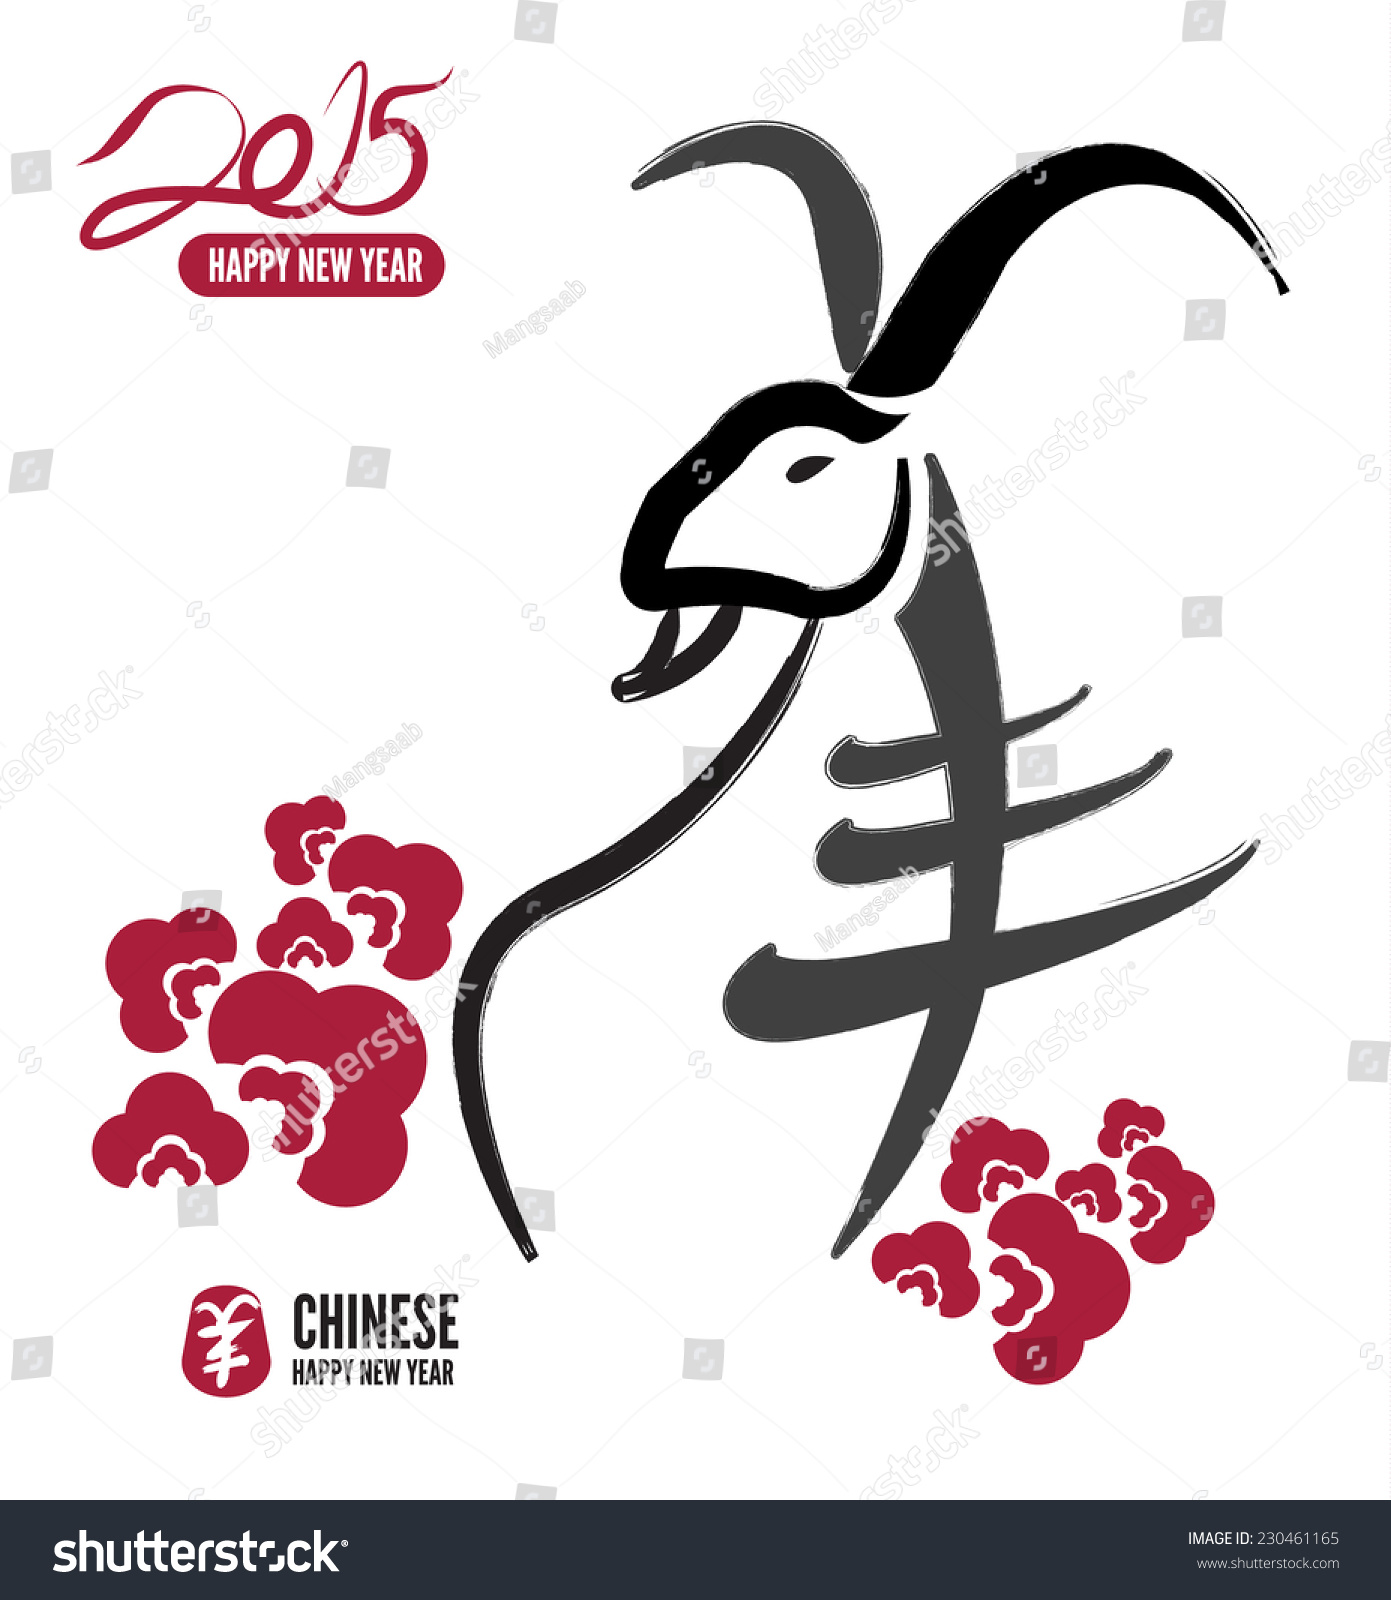 new year of the goat 2015 chinese calligraphy and hand drawn vector - 2015 Chinese New Year Animal